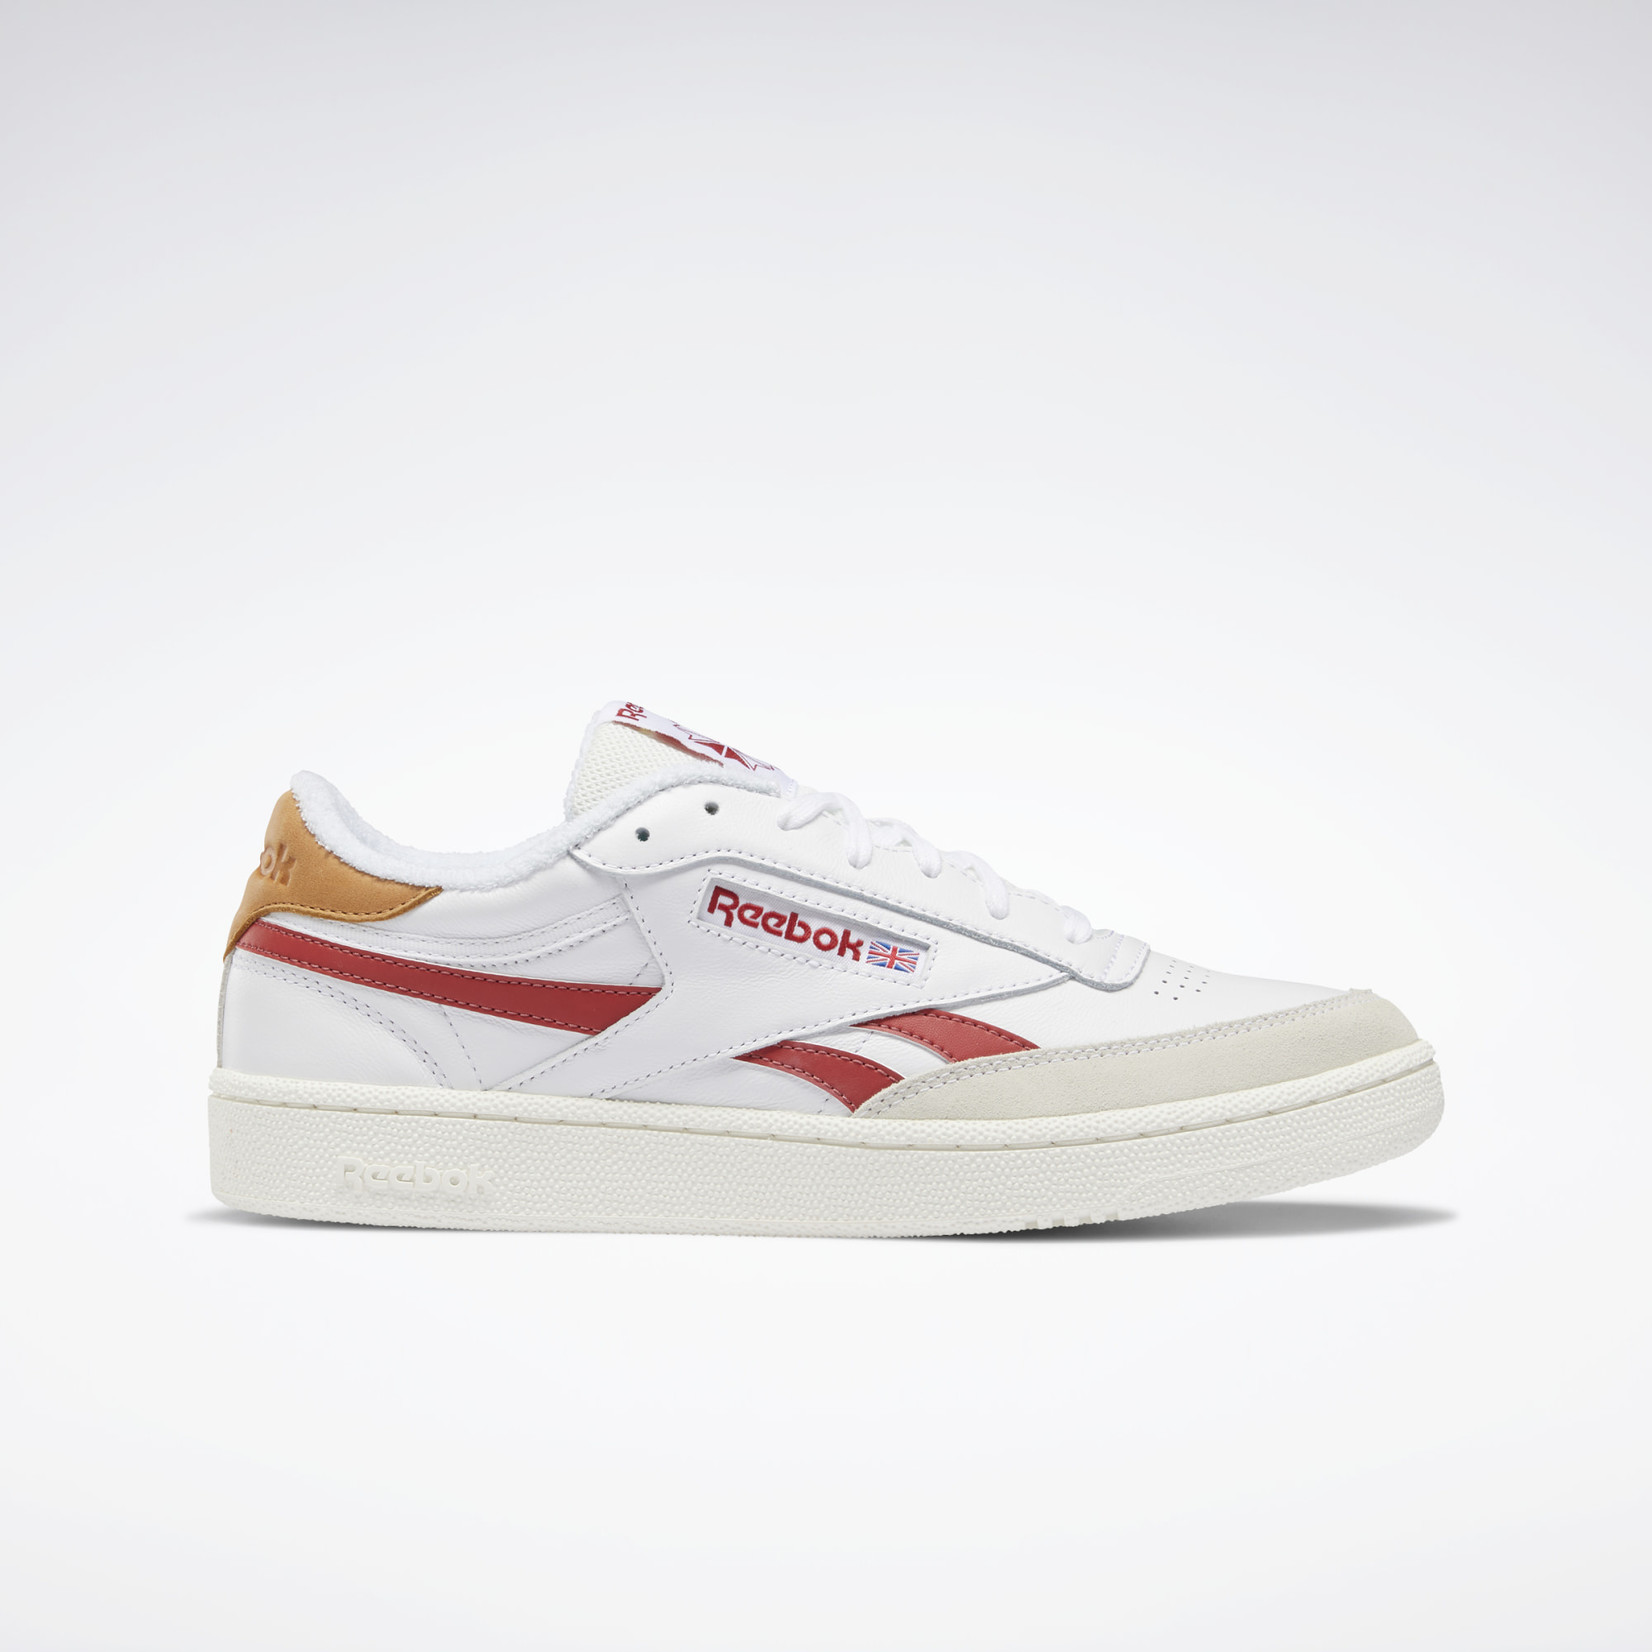 Reebok Club C Revenge White/Marred